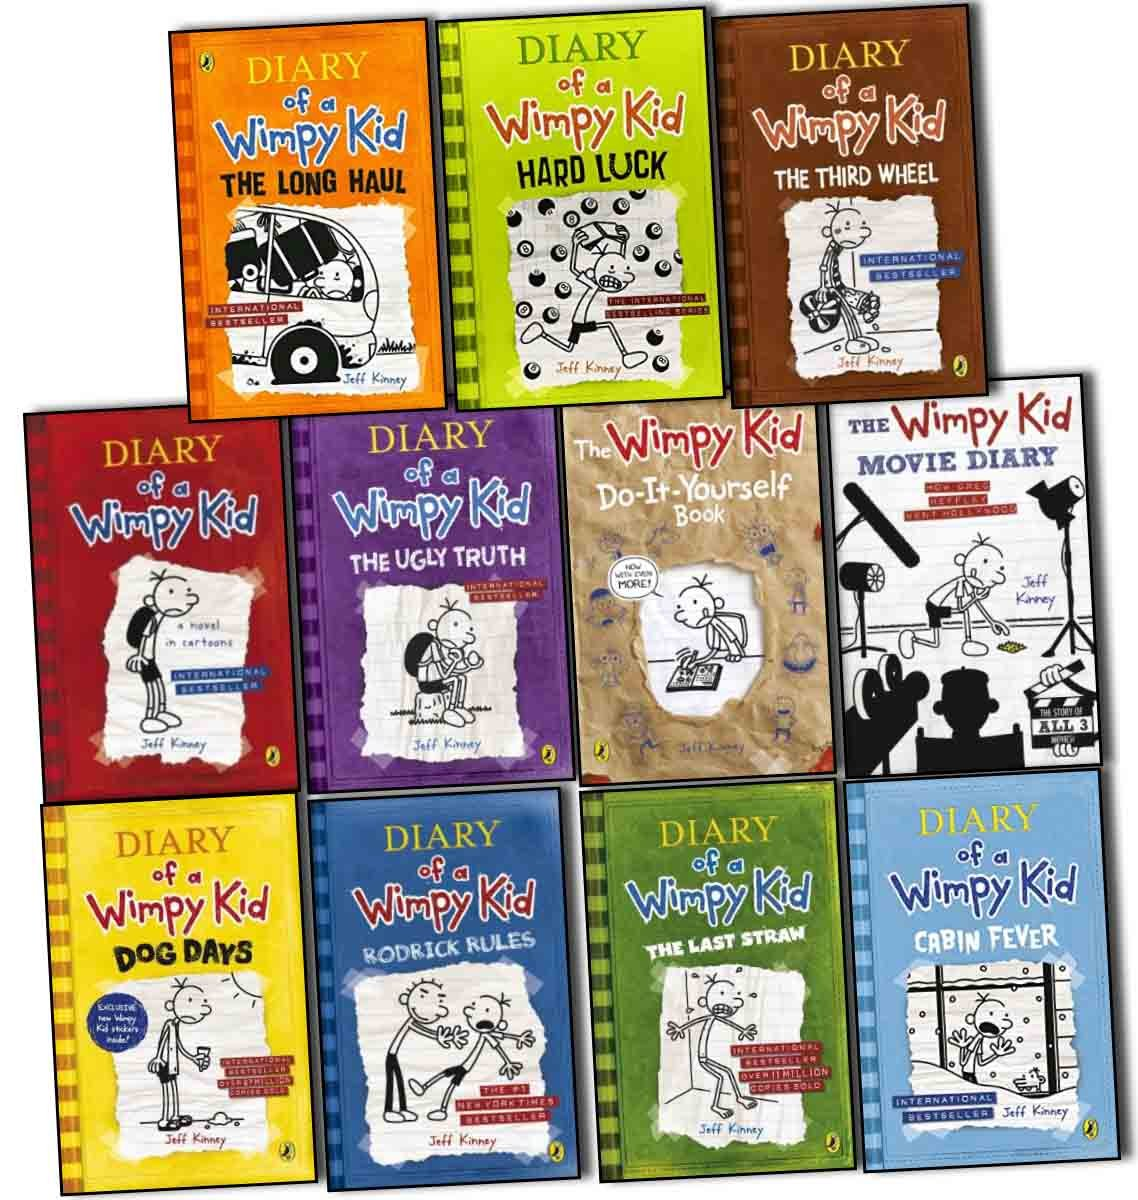 Diary of a wimpy kid collection 11 books set pack by jeff kinney diary of a wimpy kid collection 11 books set pack by jeff kinney rrp 9097 the long haul hard luck the third wheel cabin fever the ugly truth dog solutioingenieria Images